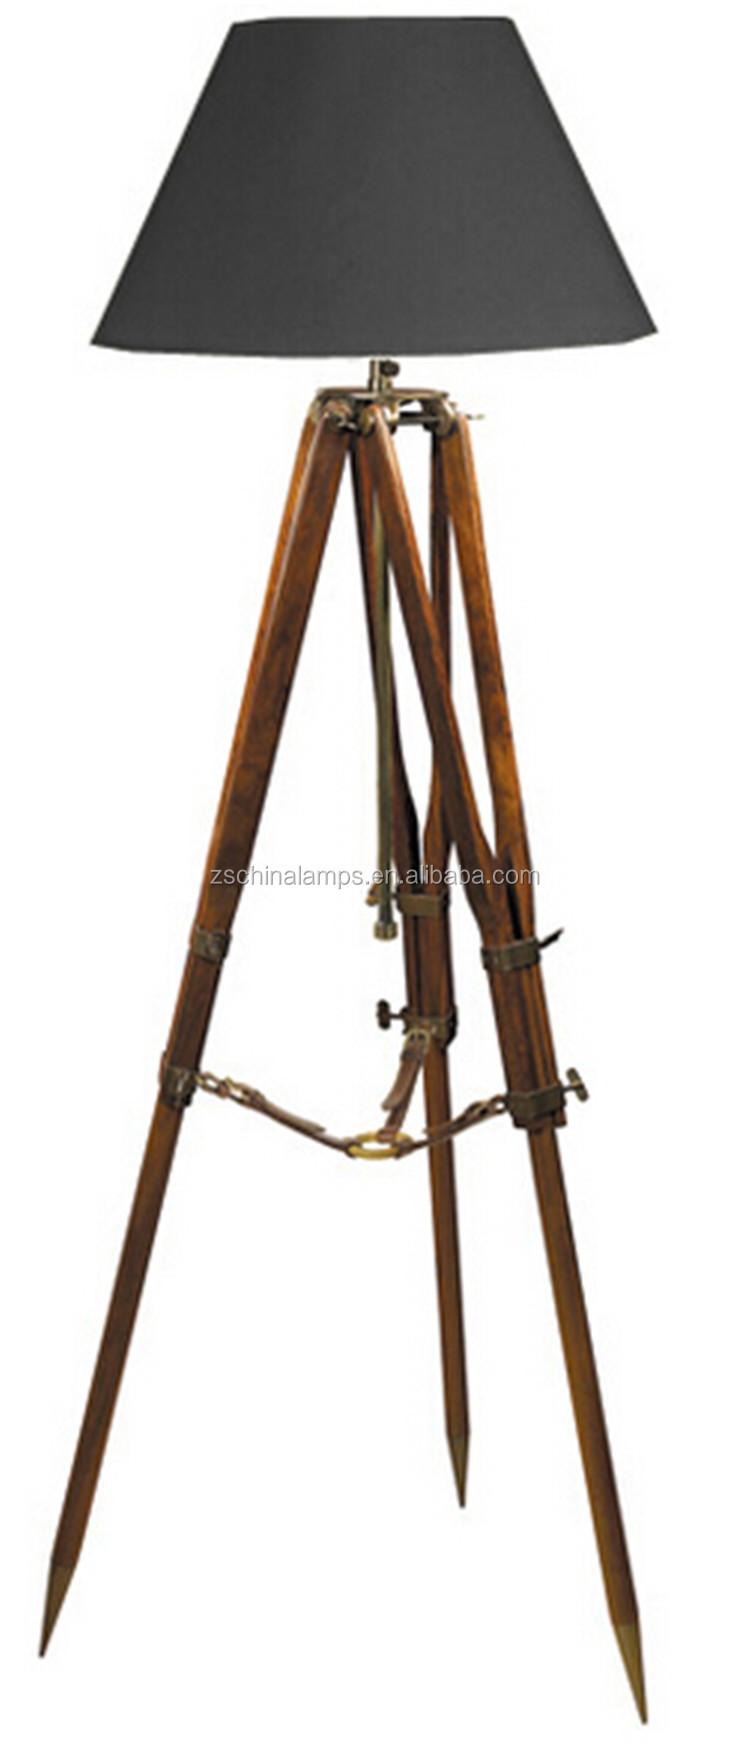 2016 Top Selling Natural Wooden Tripod 3 Legs Floor Lamp With ...